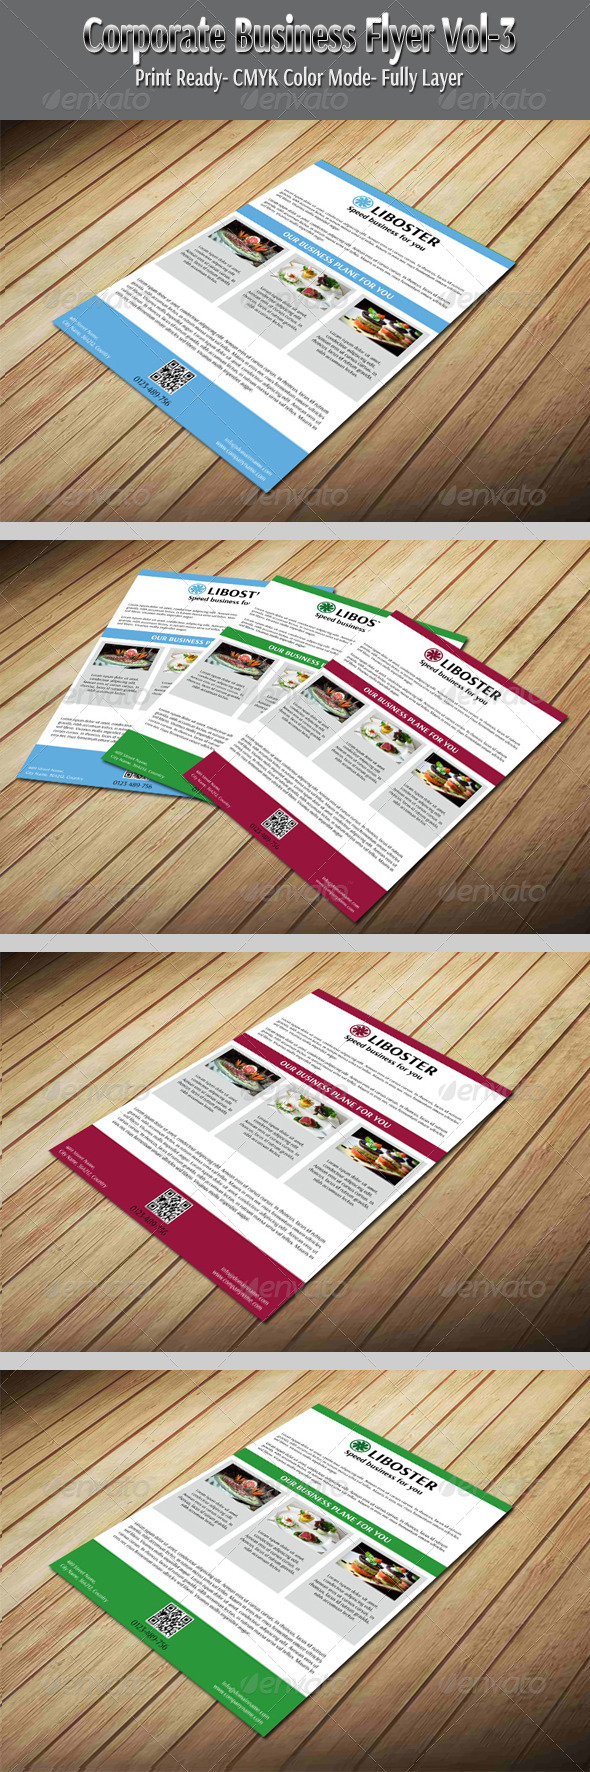 Corporate Business Flyer Vol-3 - Corporate Flyers